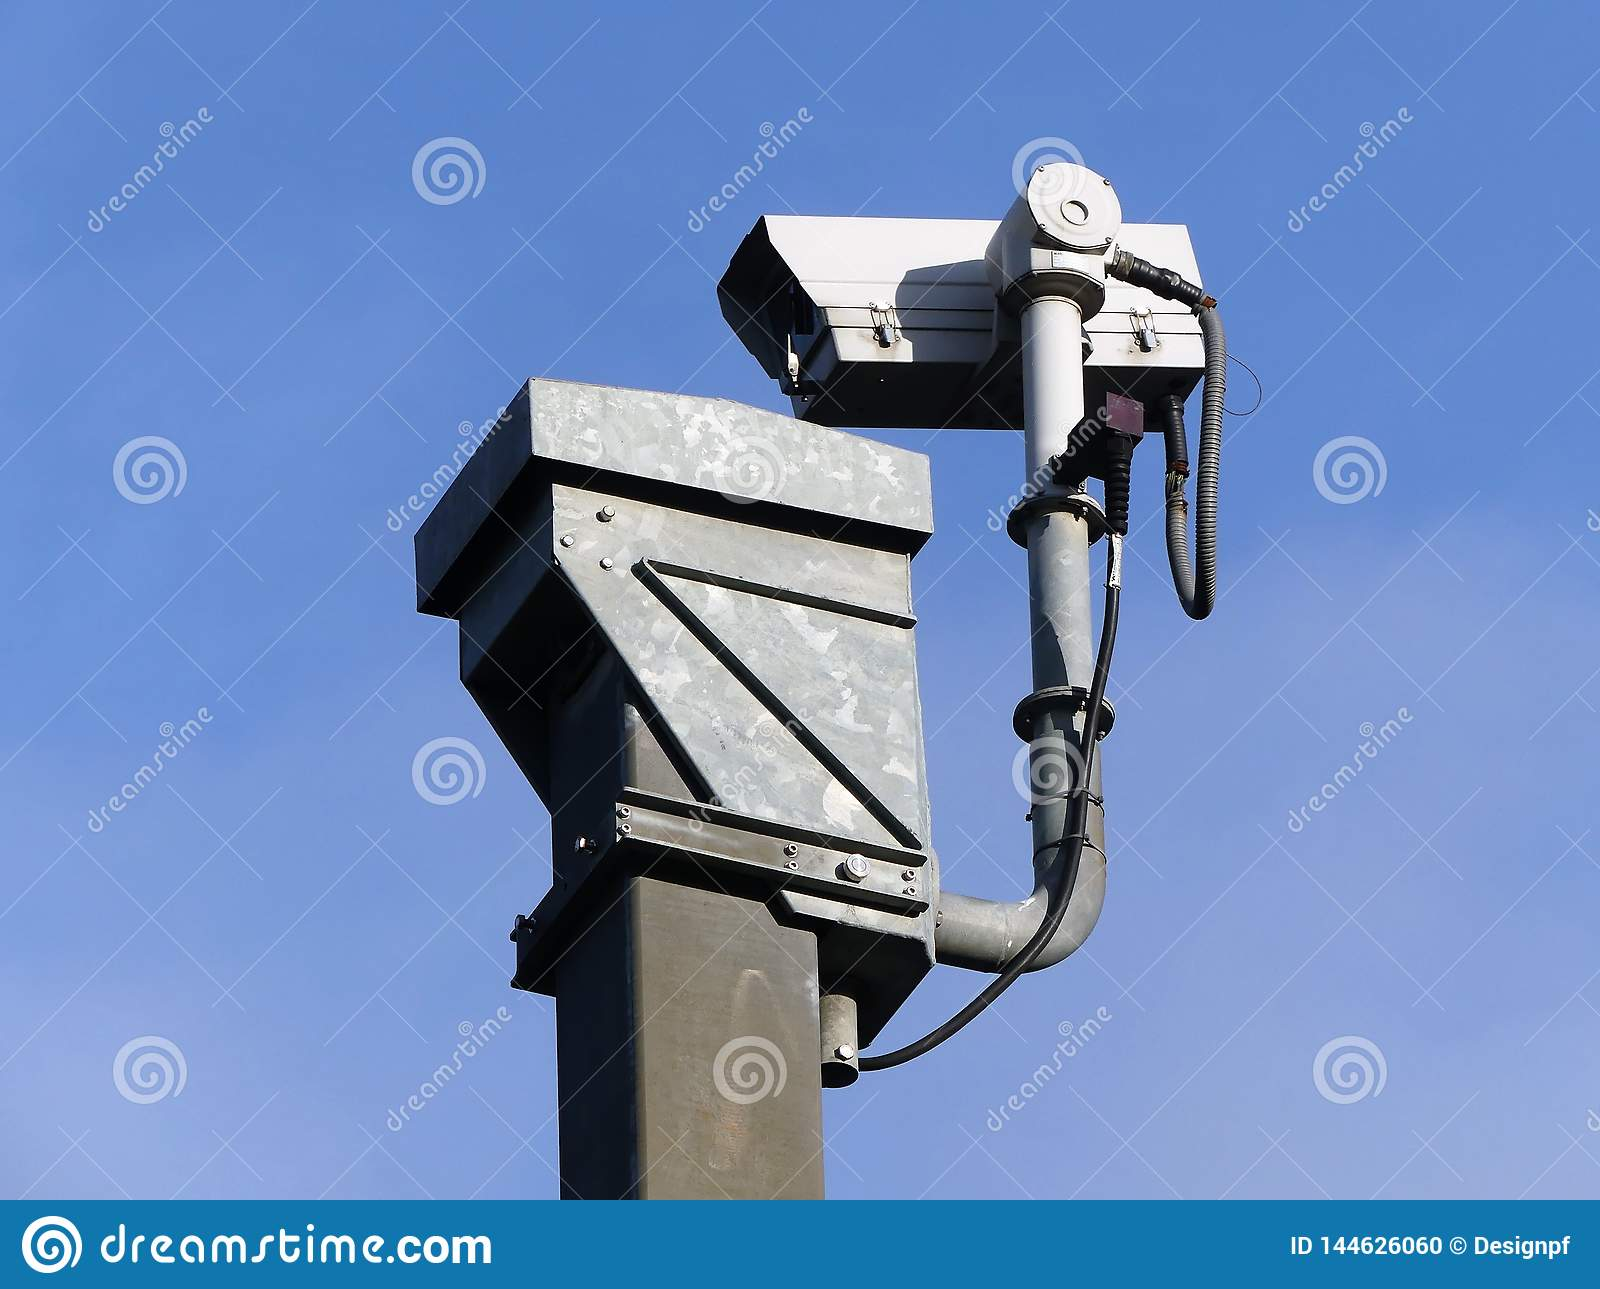 Surveillance camera monitoring motorway traffic on the M25